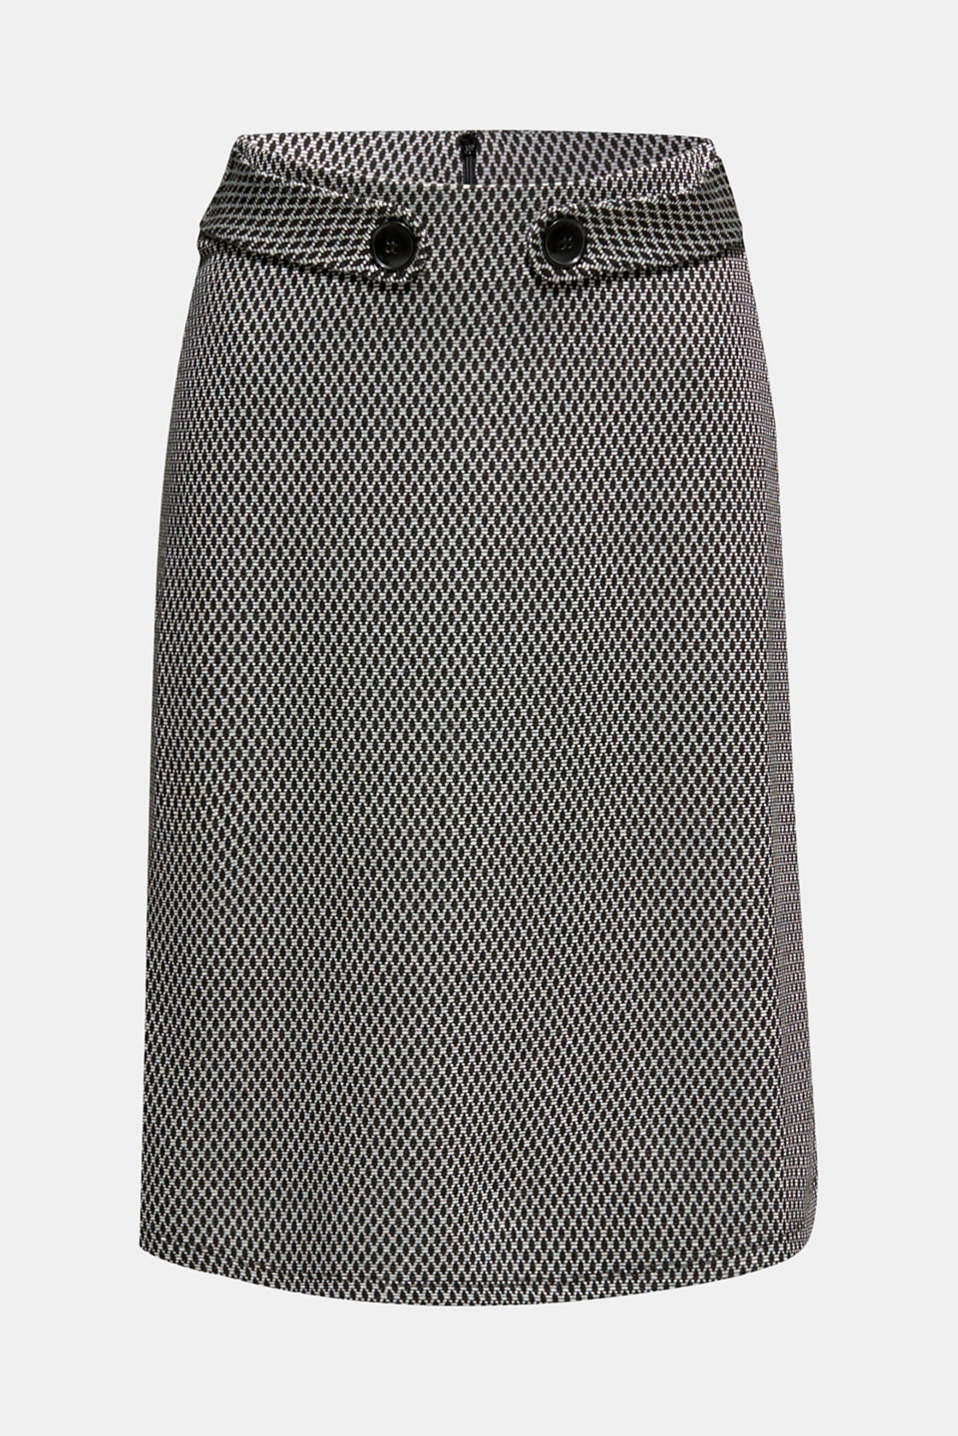 A-line skirt made of patterned jersey, GREY, detail image number 7